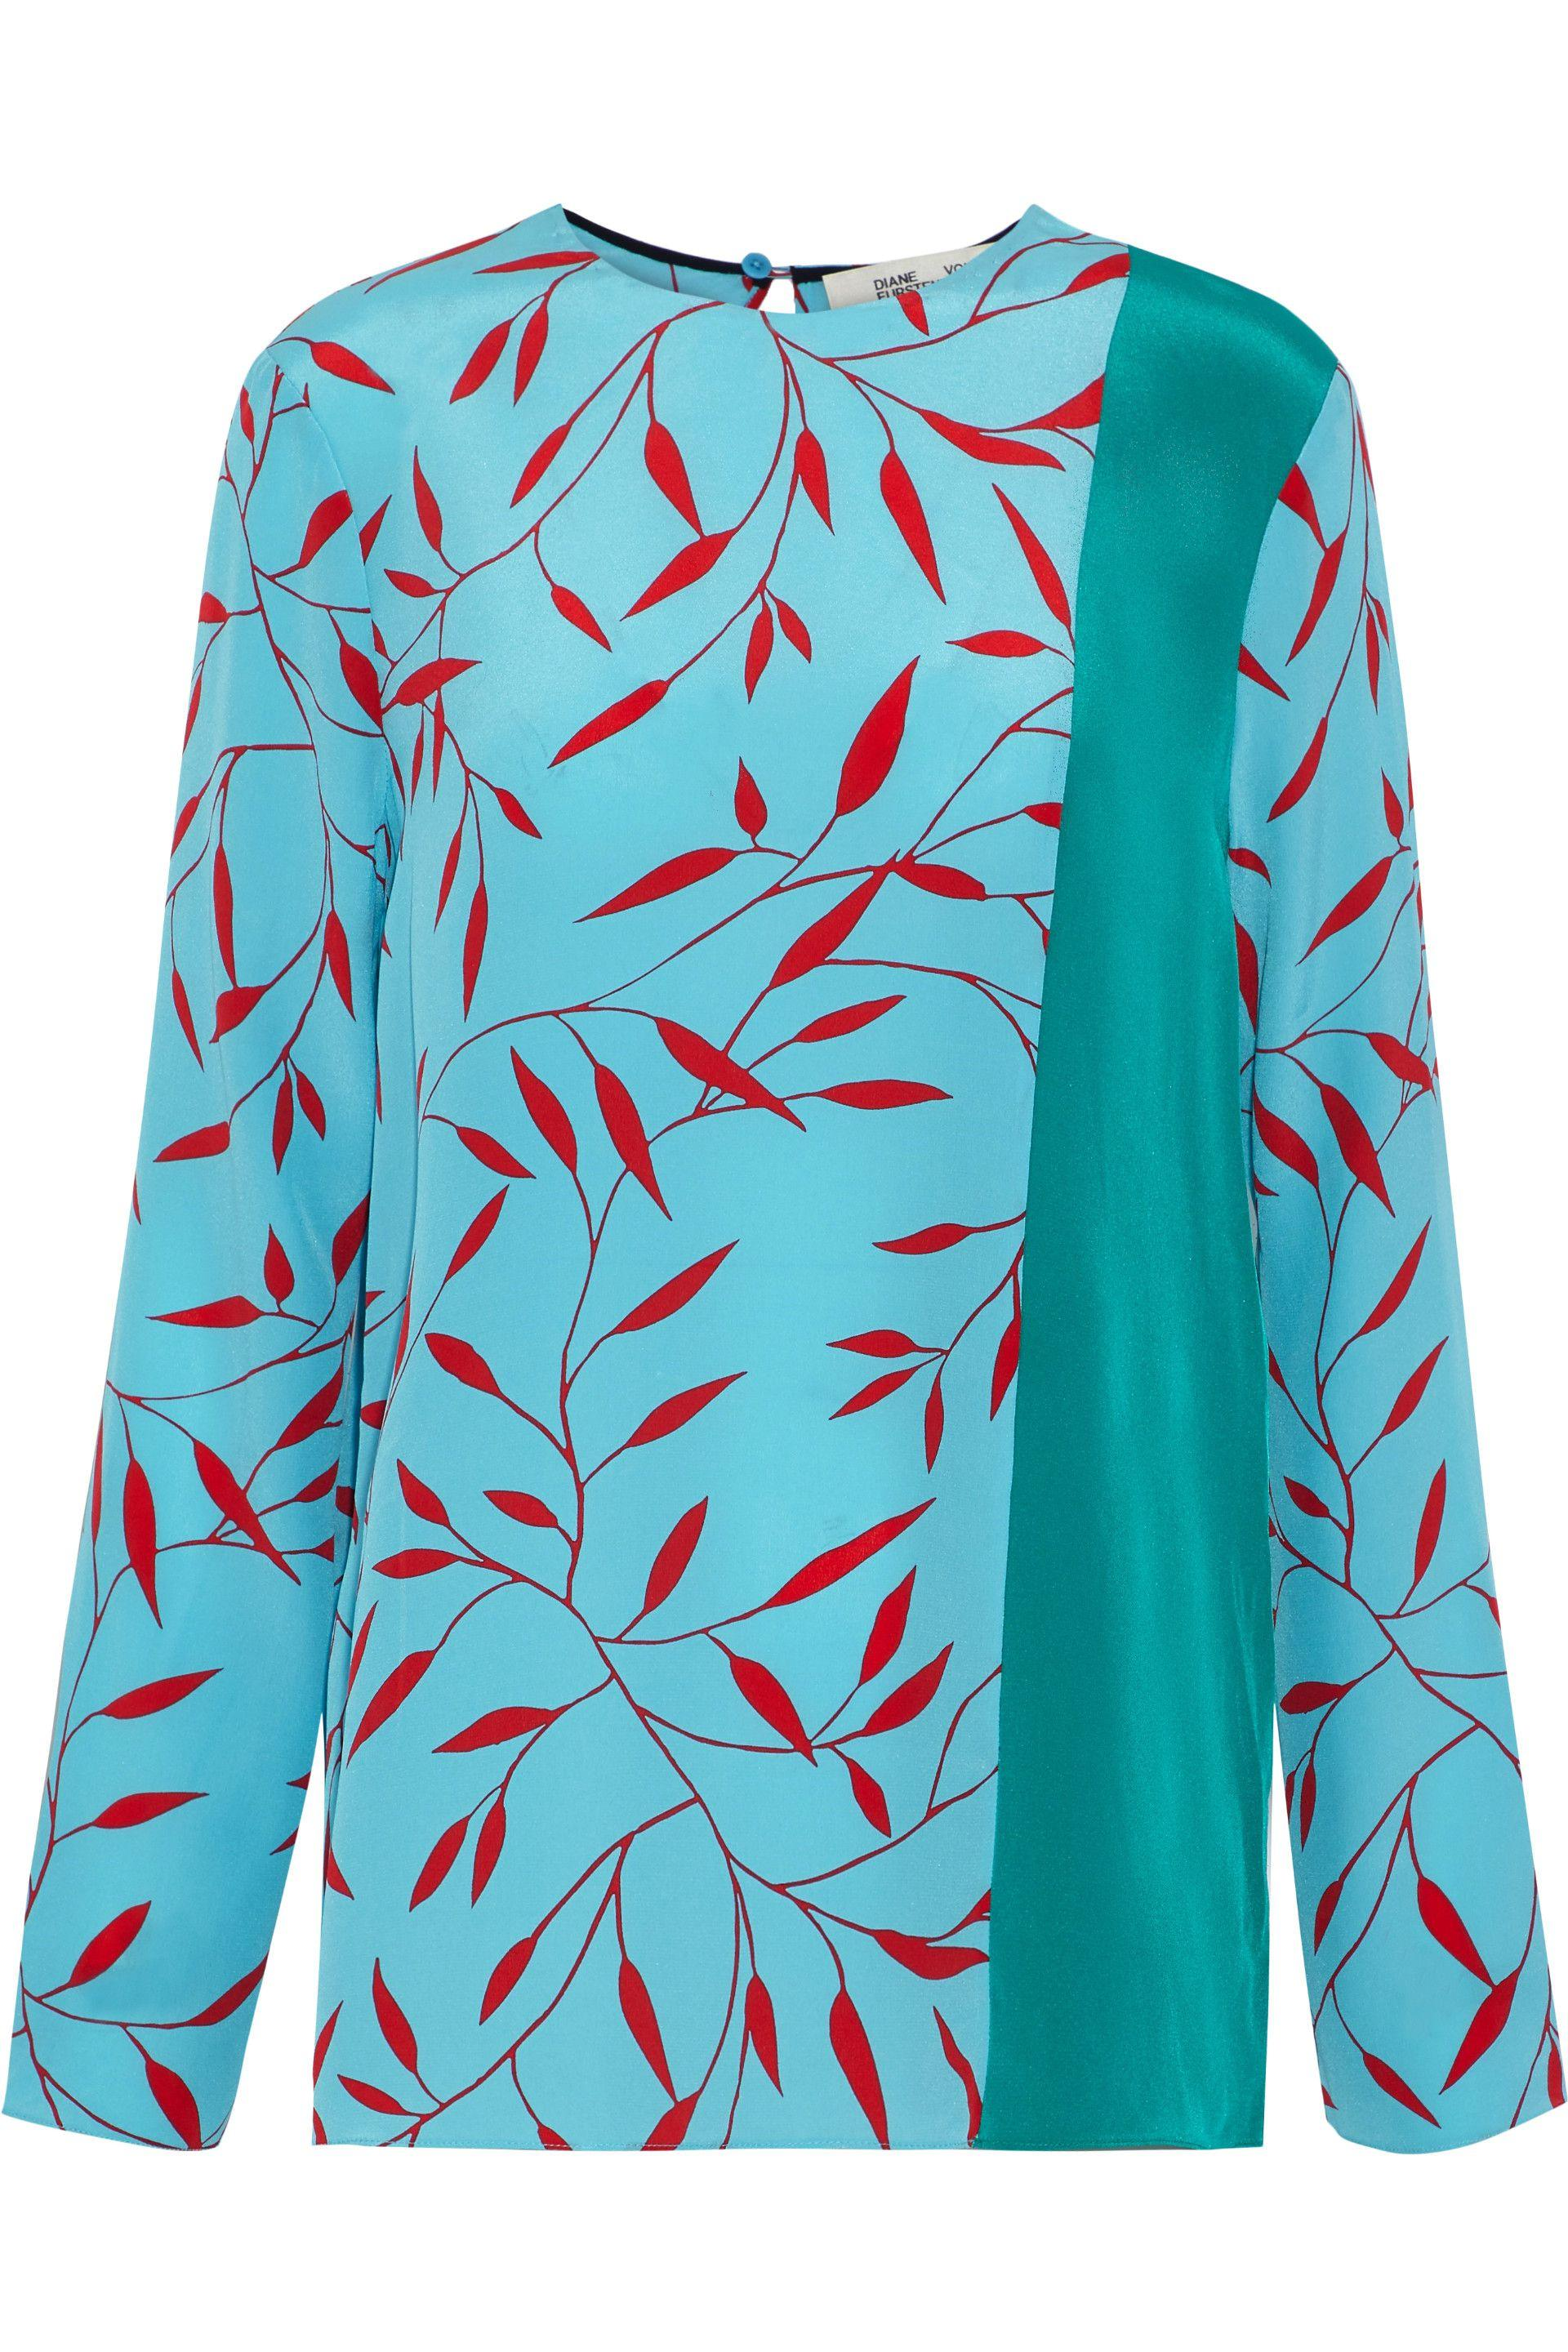 ebeef2b0939d6 Diane von Furstenberg. Women s Woman Floral-print Silk Crepe De Chine Top  Light Blue